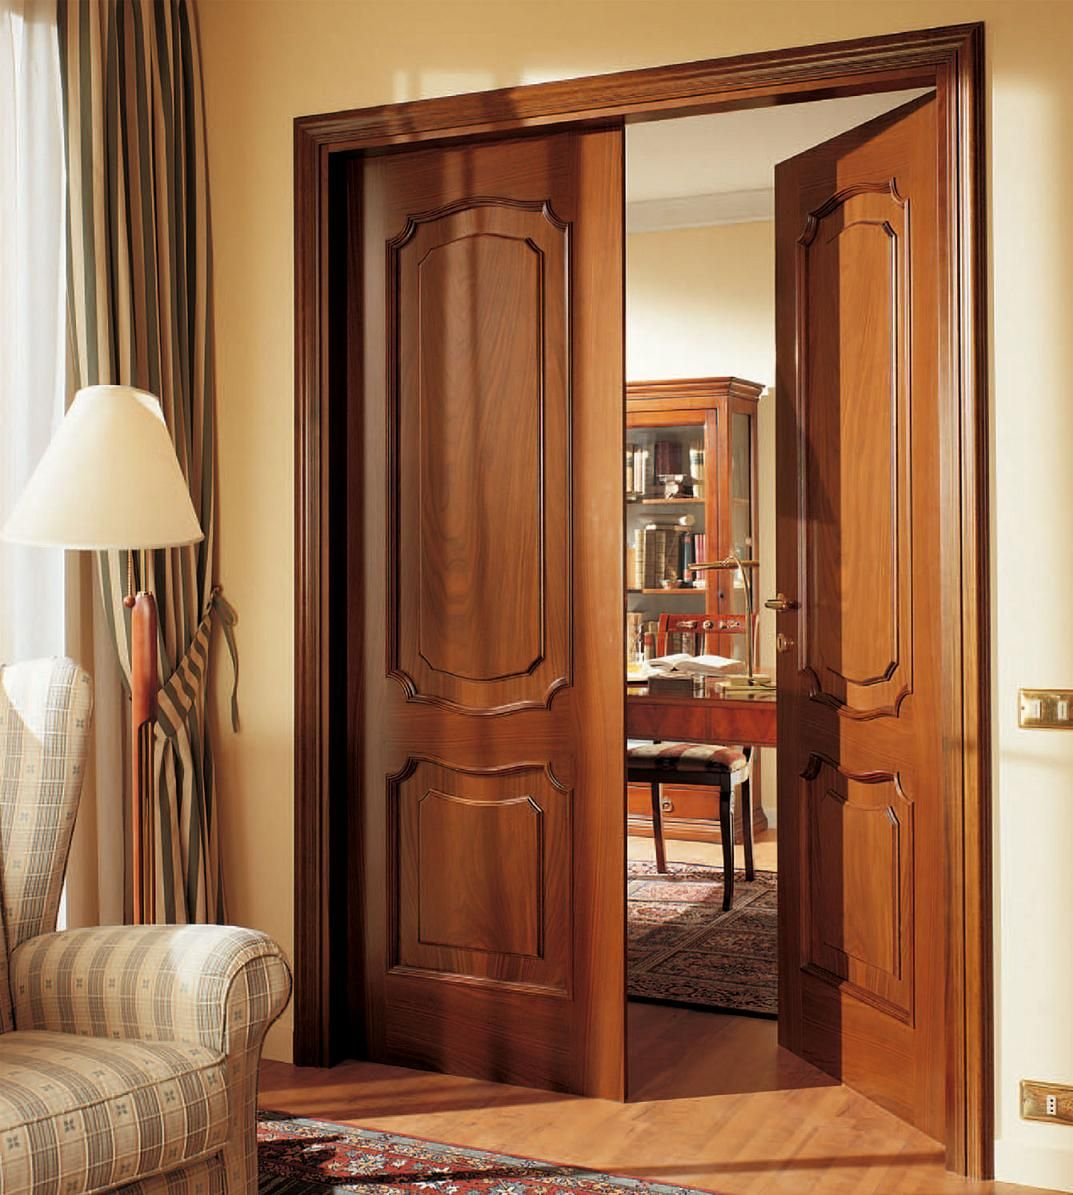 Solid wood doors doors al habib panel doors al habib panel used wood interior doors for sale which are offered at marketplaces will serve you well eventelaan Image collections